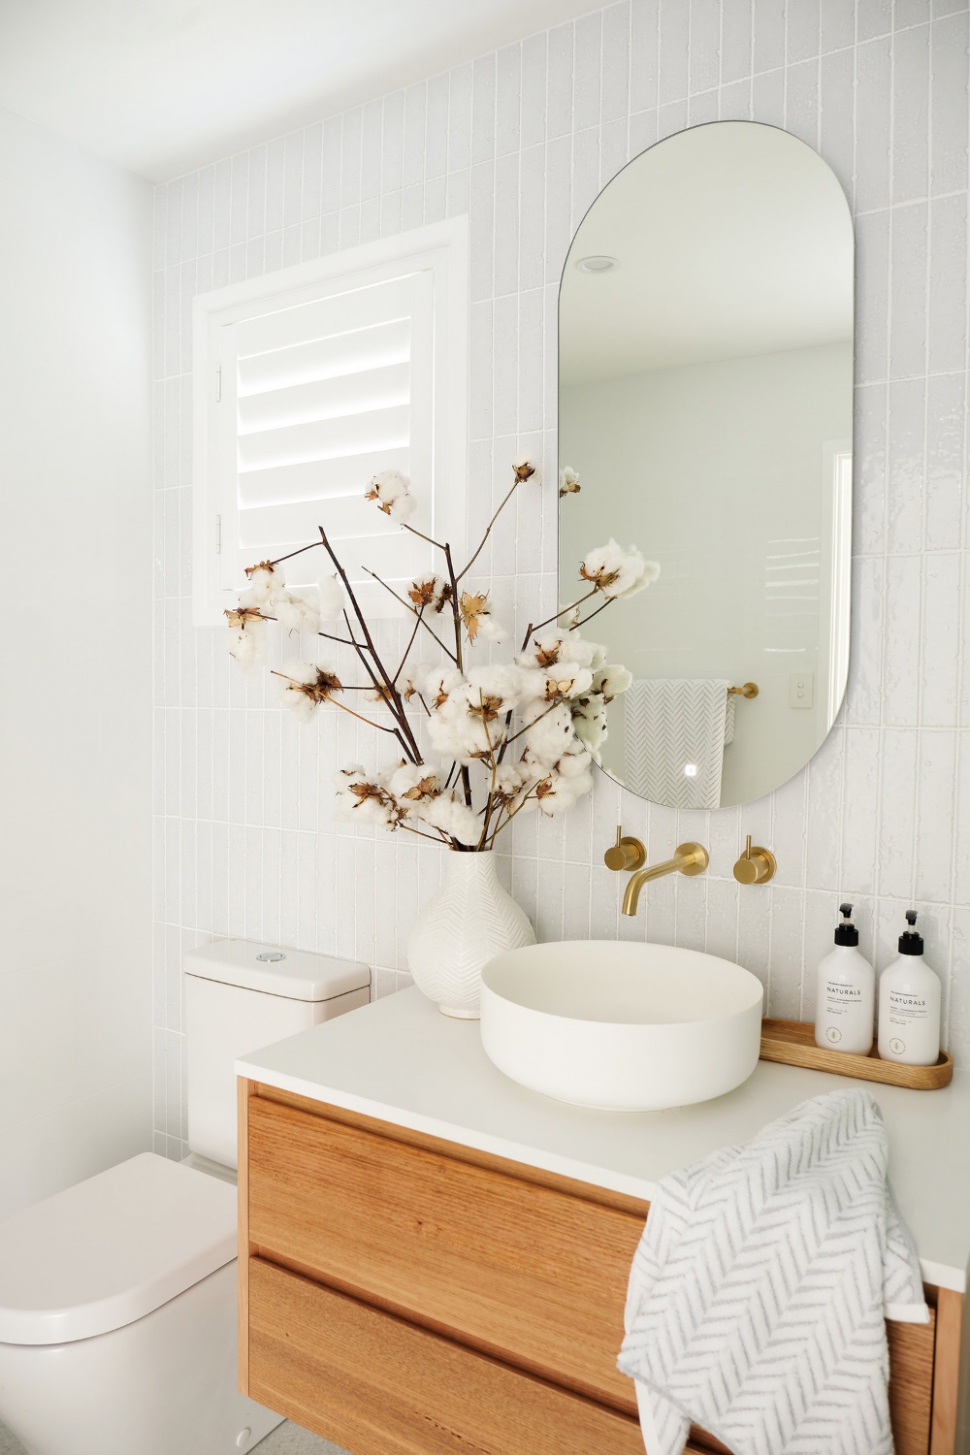 My Bathroom Renovation Revealed | House and home magazine ...